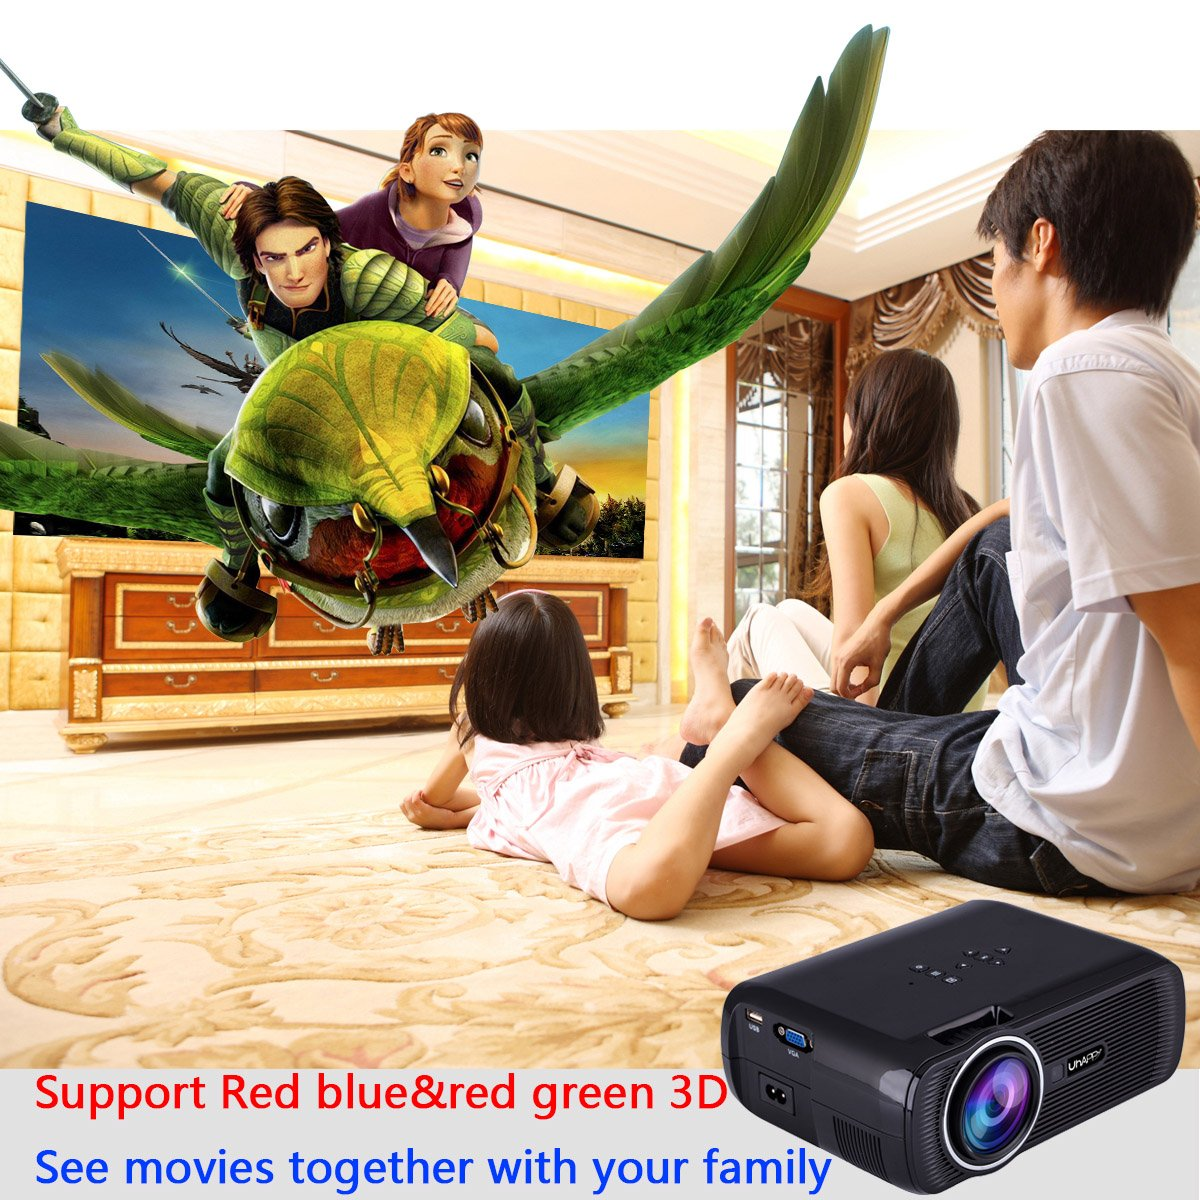 UHAPPY U80 Mini LED HD projector Portable projector (EN) - Black by U Happy (Image #9)